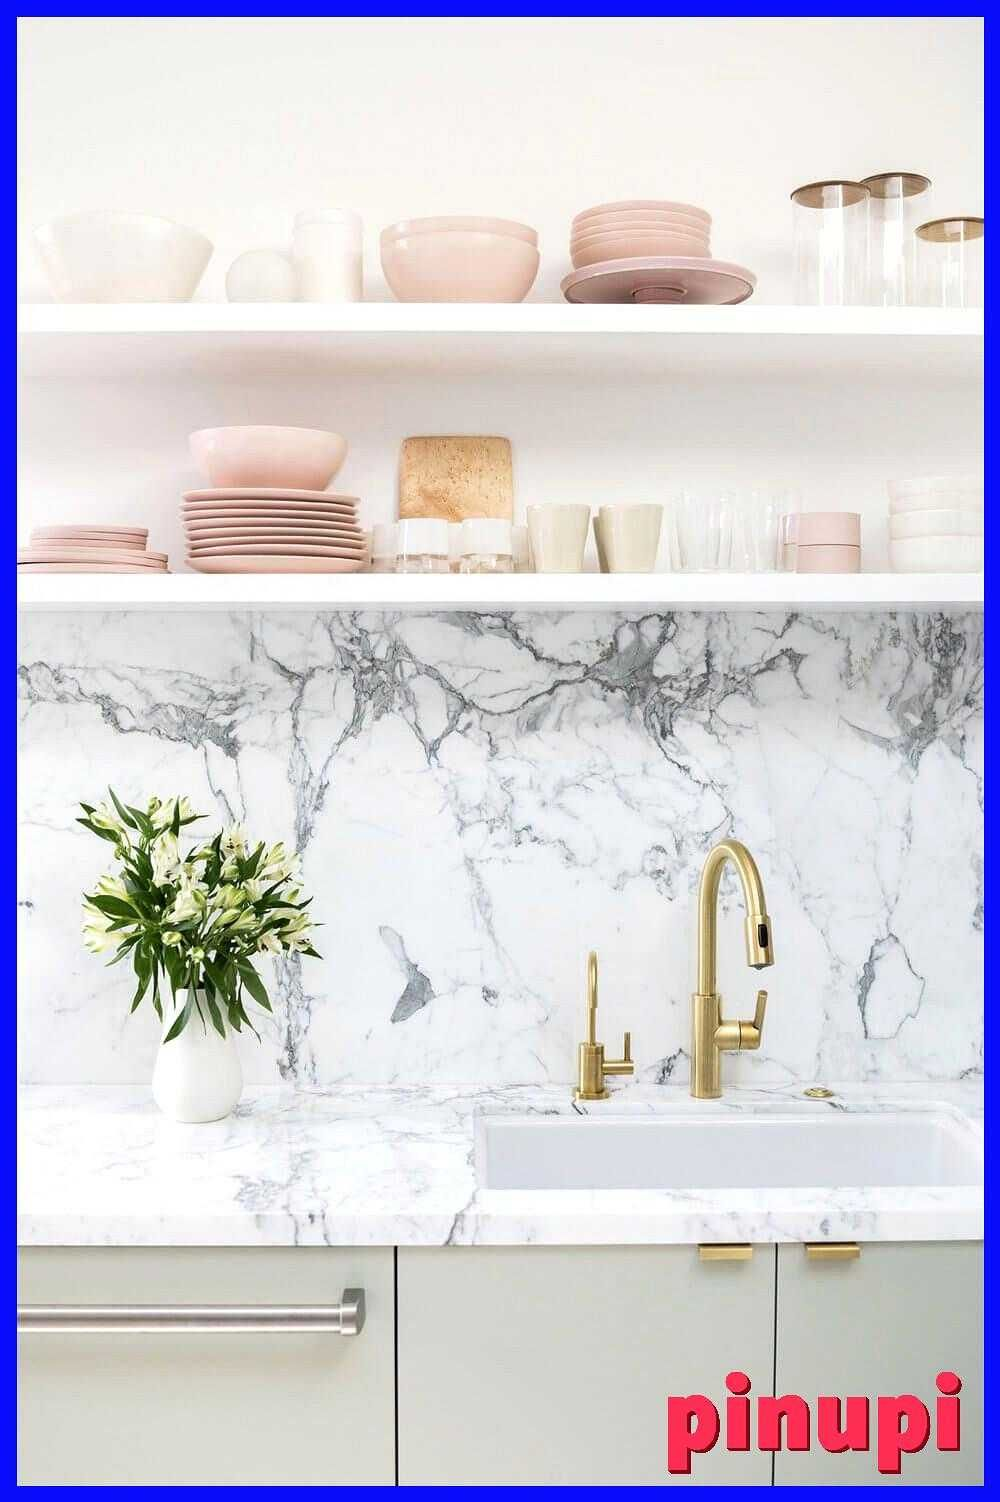 6 Reasons To Choose Open Kitchen Shelves Instead Of Cabinets 6 Reasons To Choose Open Kitchen Shelves Instead Of Cabinets Here S Why You Should Make The Switch Open Kitchen Shelves Instead Of Cabinets Bright Kitchen With Marble Backsplash White Open Shelves And Pretty Glass Tableware Nonagon Style